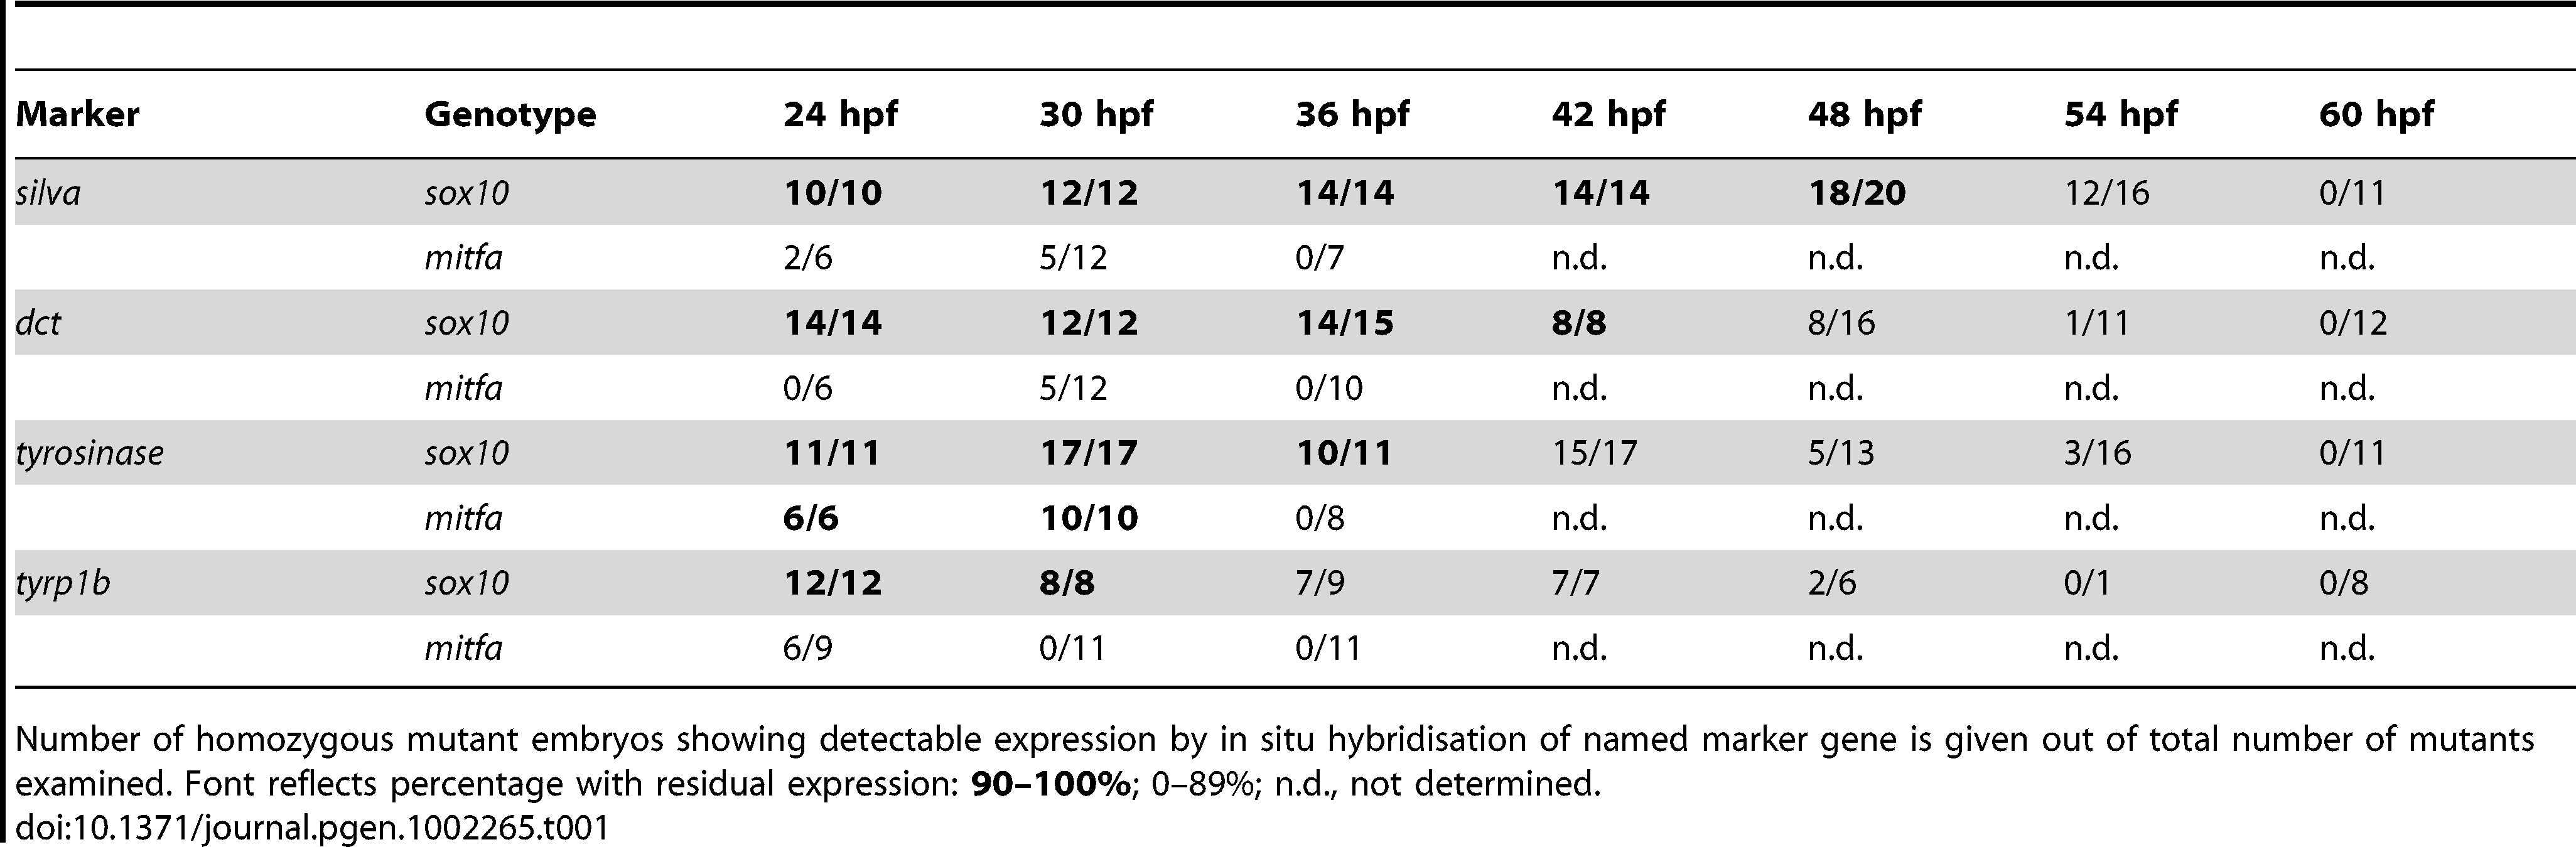 Quantitation of numbers of mutant embryos showing residual marker gene expression.